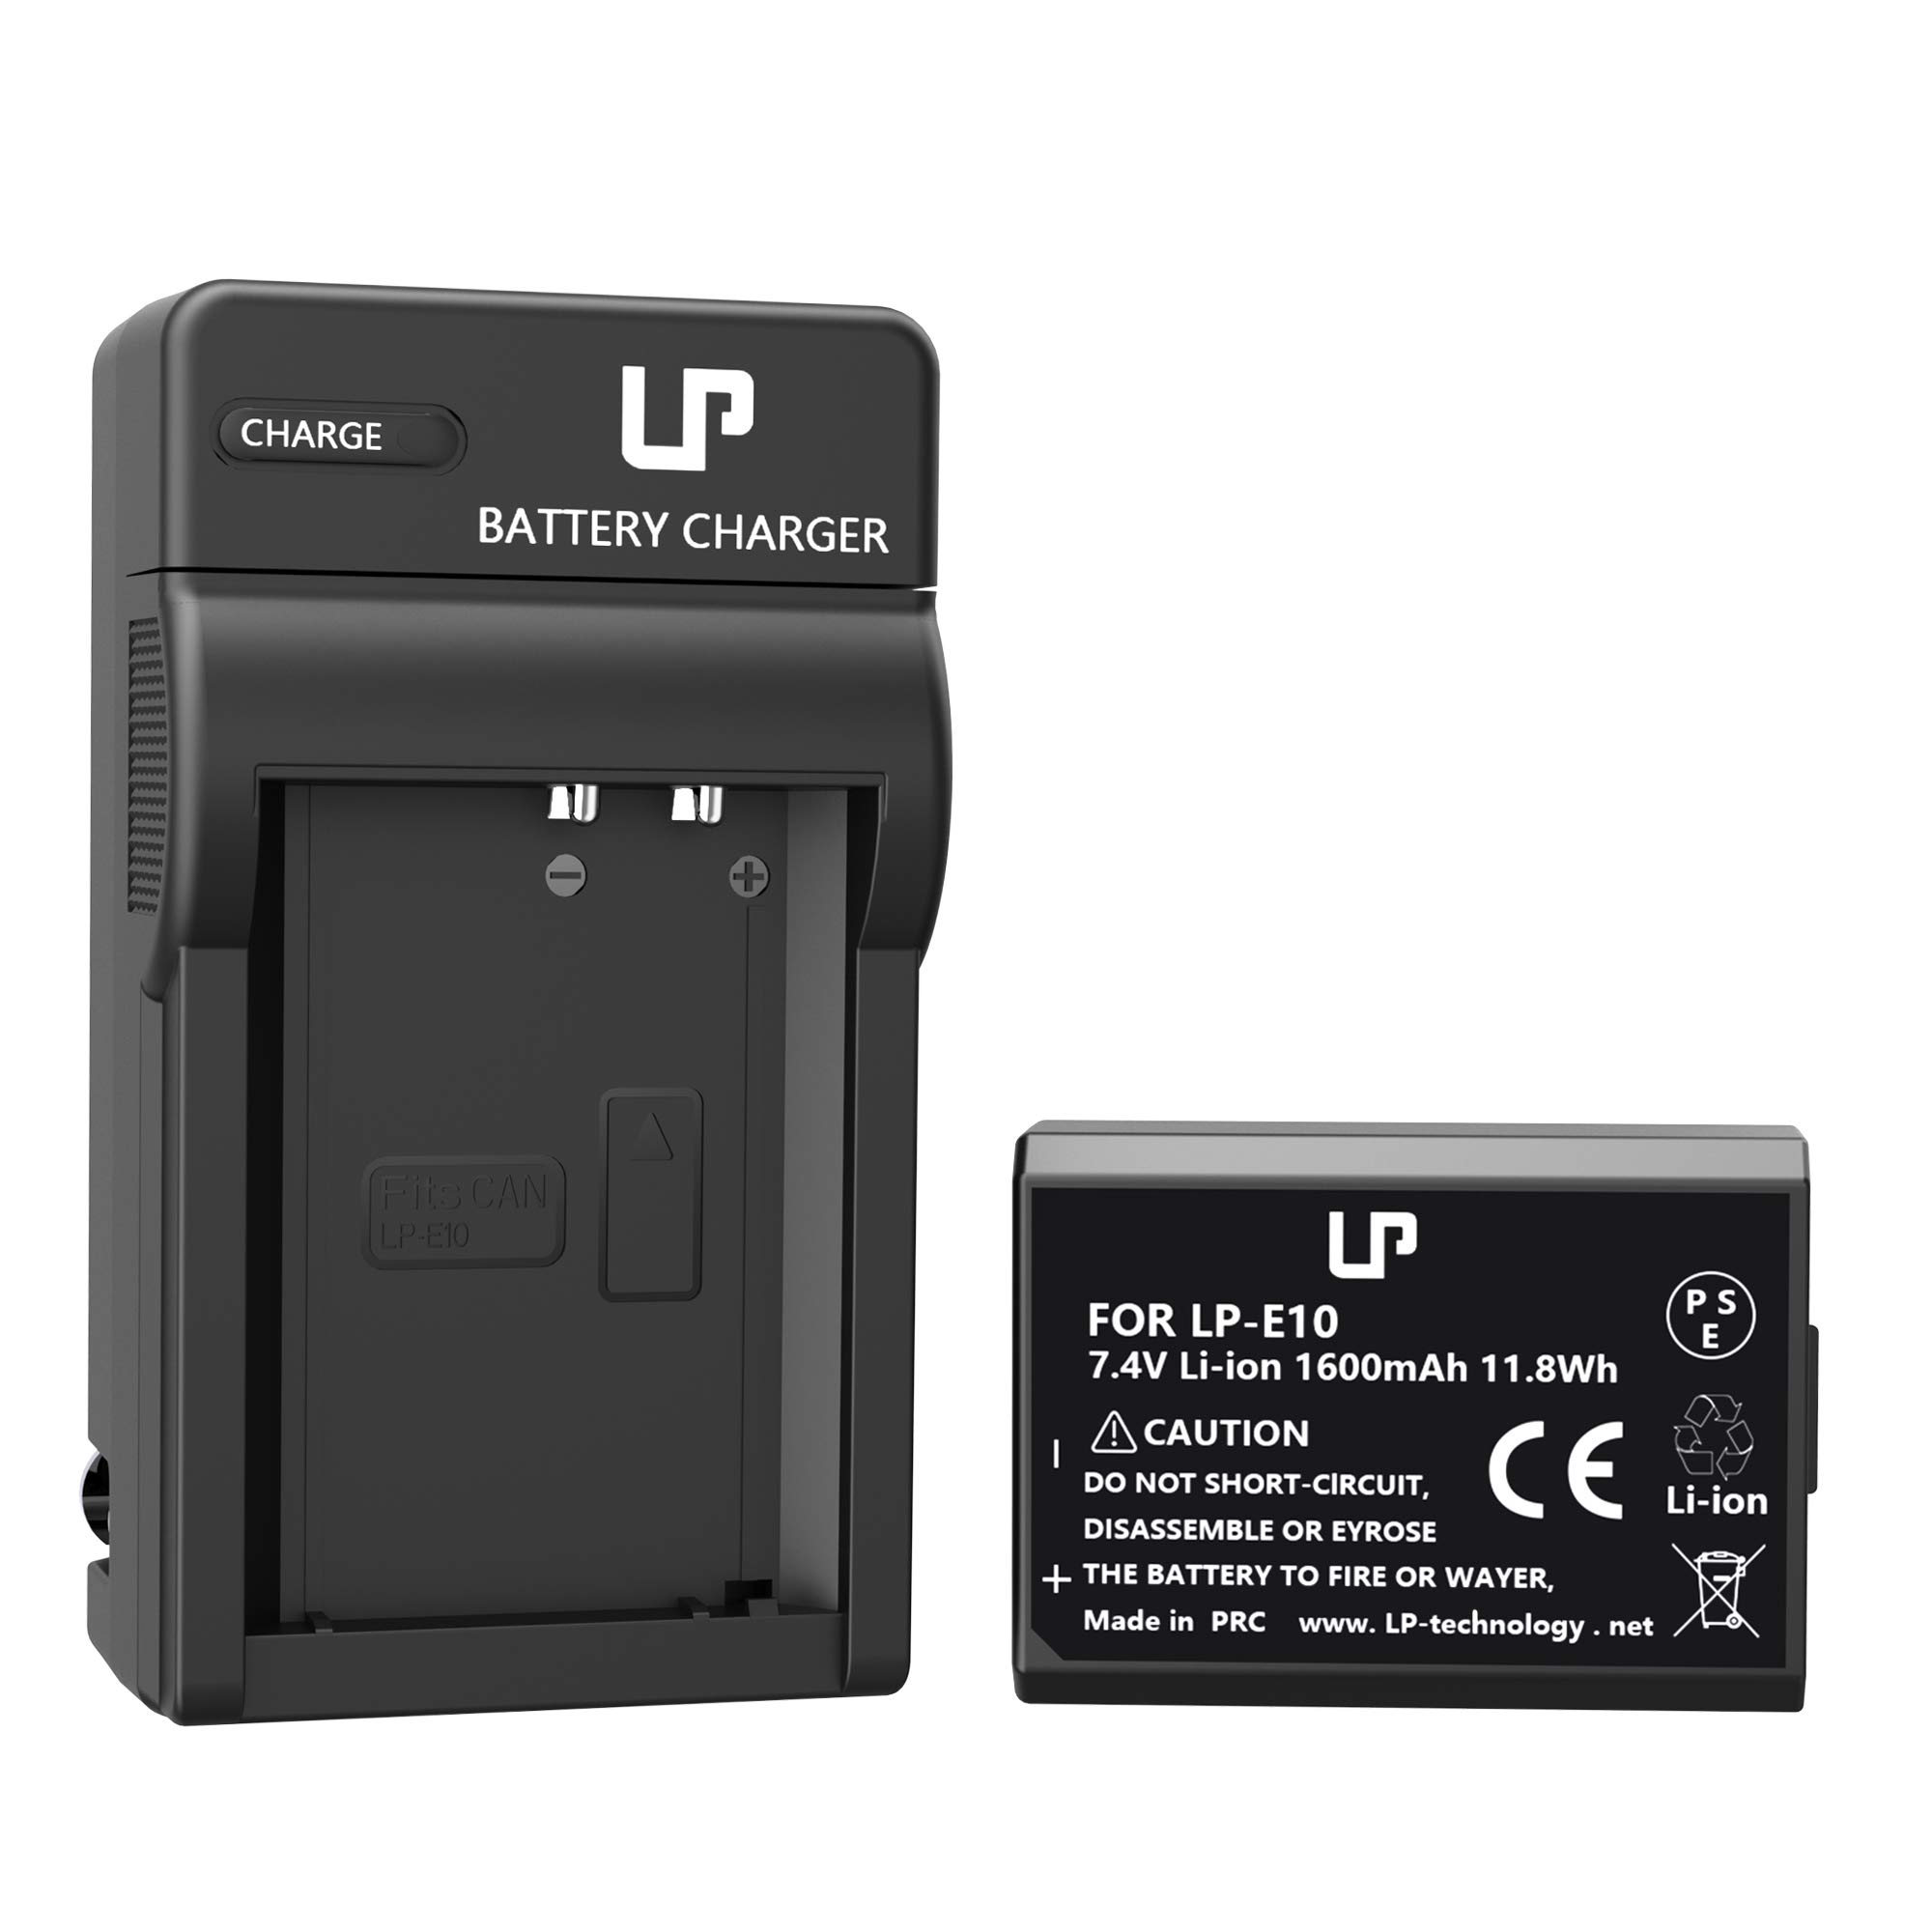 LP LP-E10 Battery Charger Pack, Compatible with Canon EOS Rebel T3, T5, T6, T7, T100, 1100D, 1200D, 1300D,1500D, 2000D, 3000D, 4000D Kiss X50, X70, X80, X90 & More (Not for T3i T5i T6i T6s T7i)